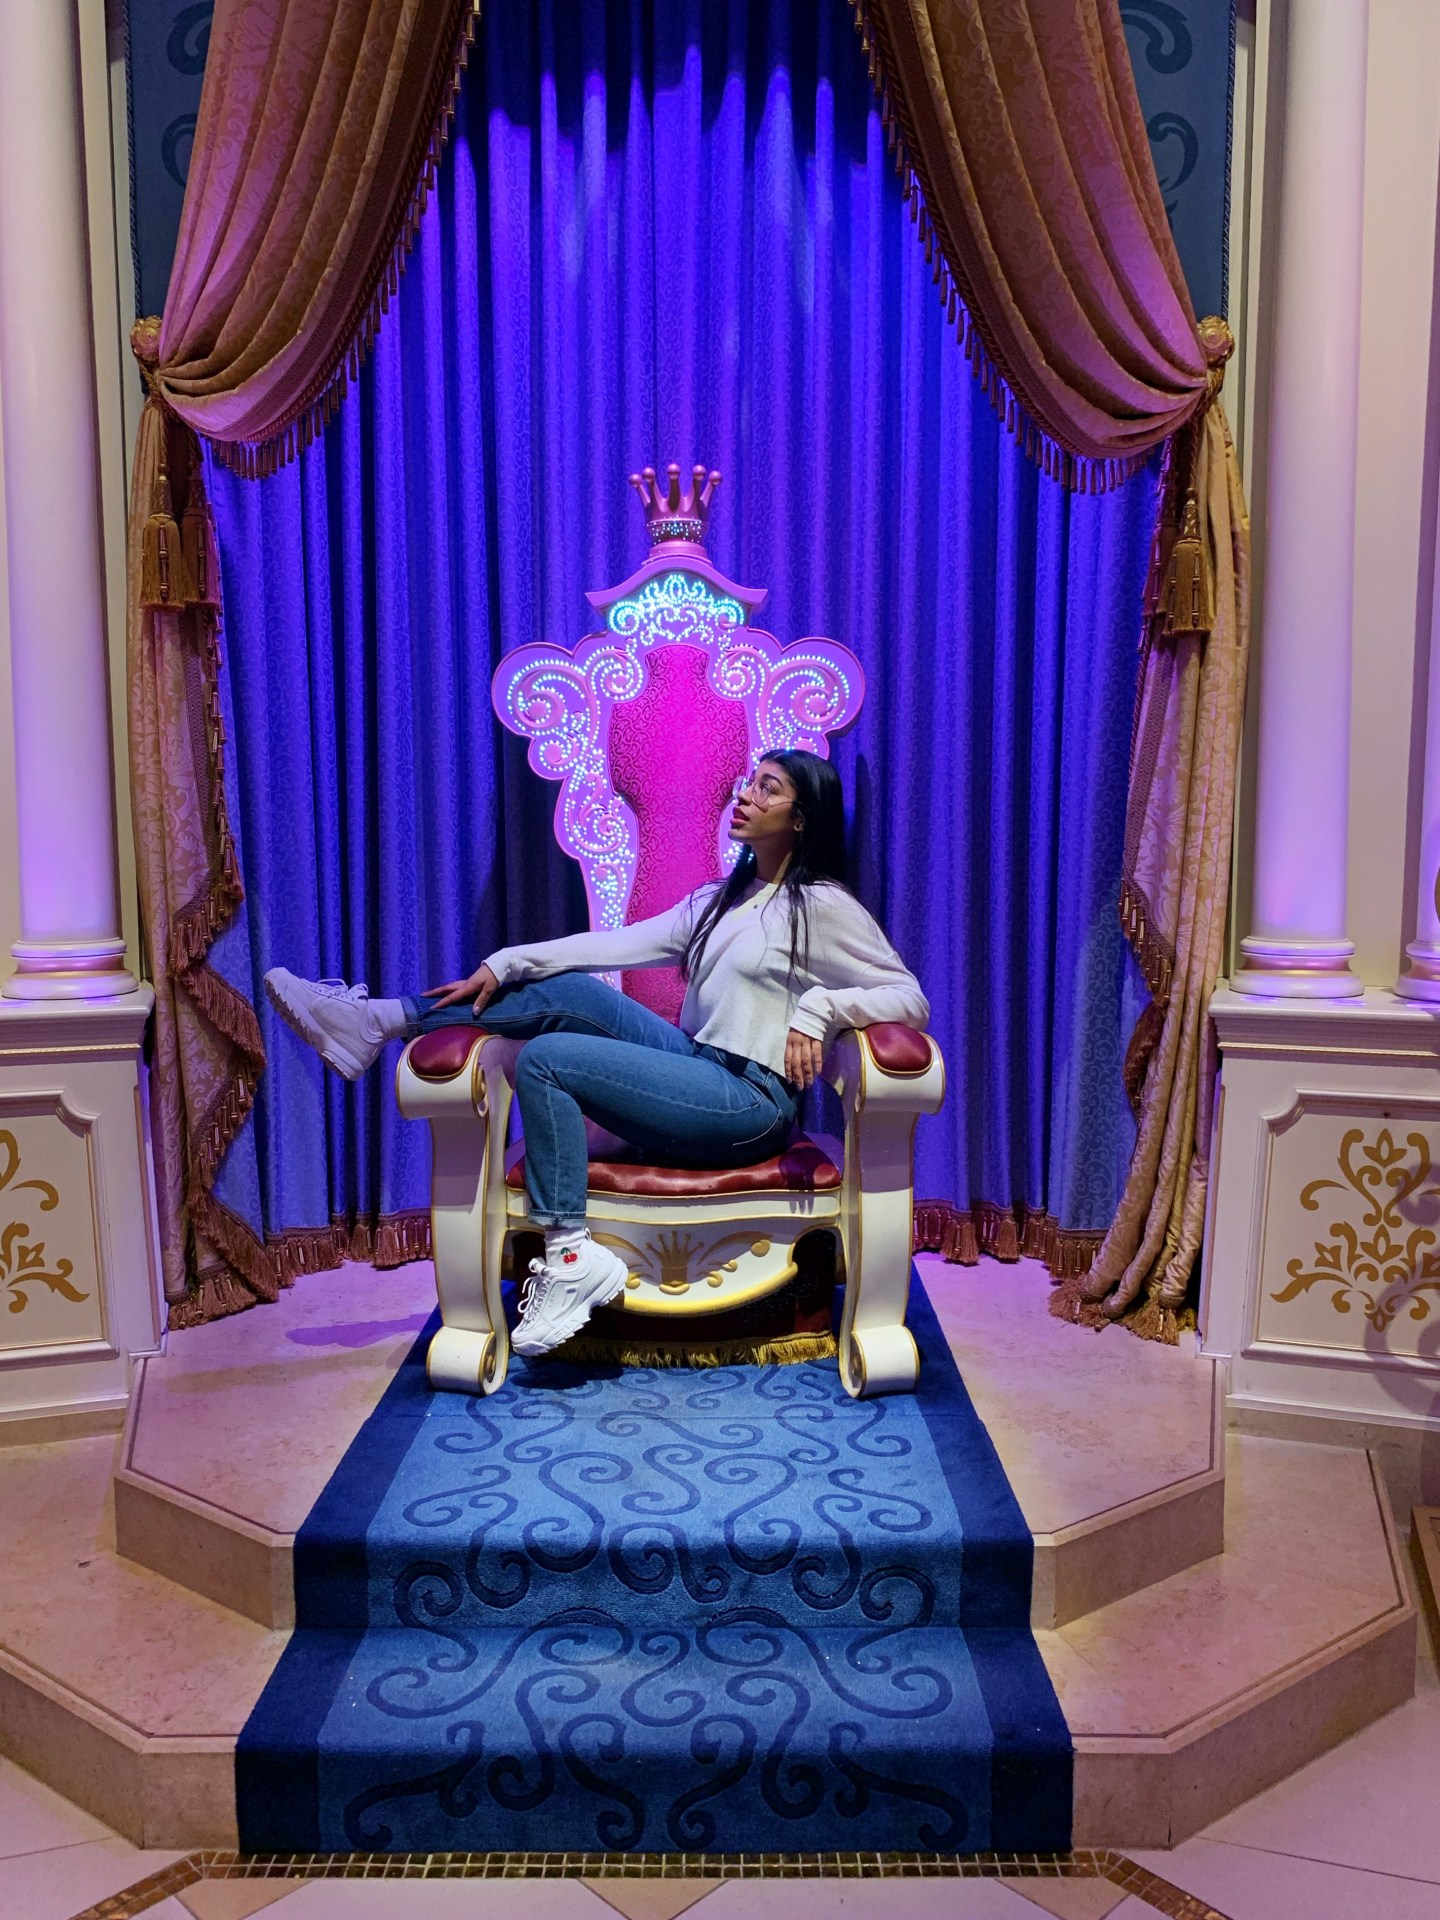 Woman on pink throne at Tokyo Disney